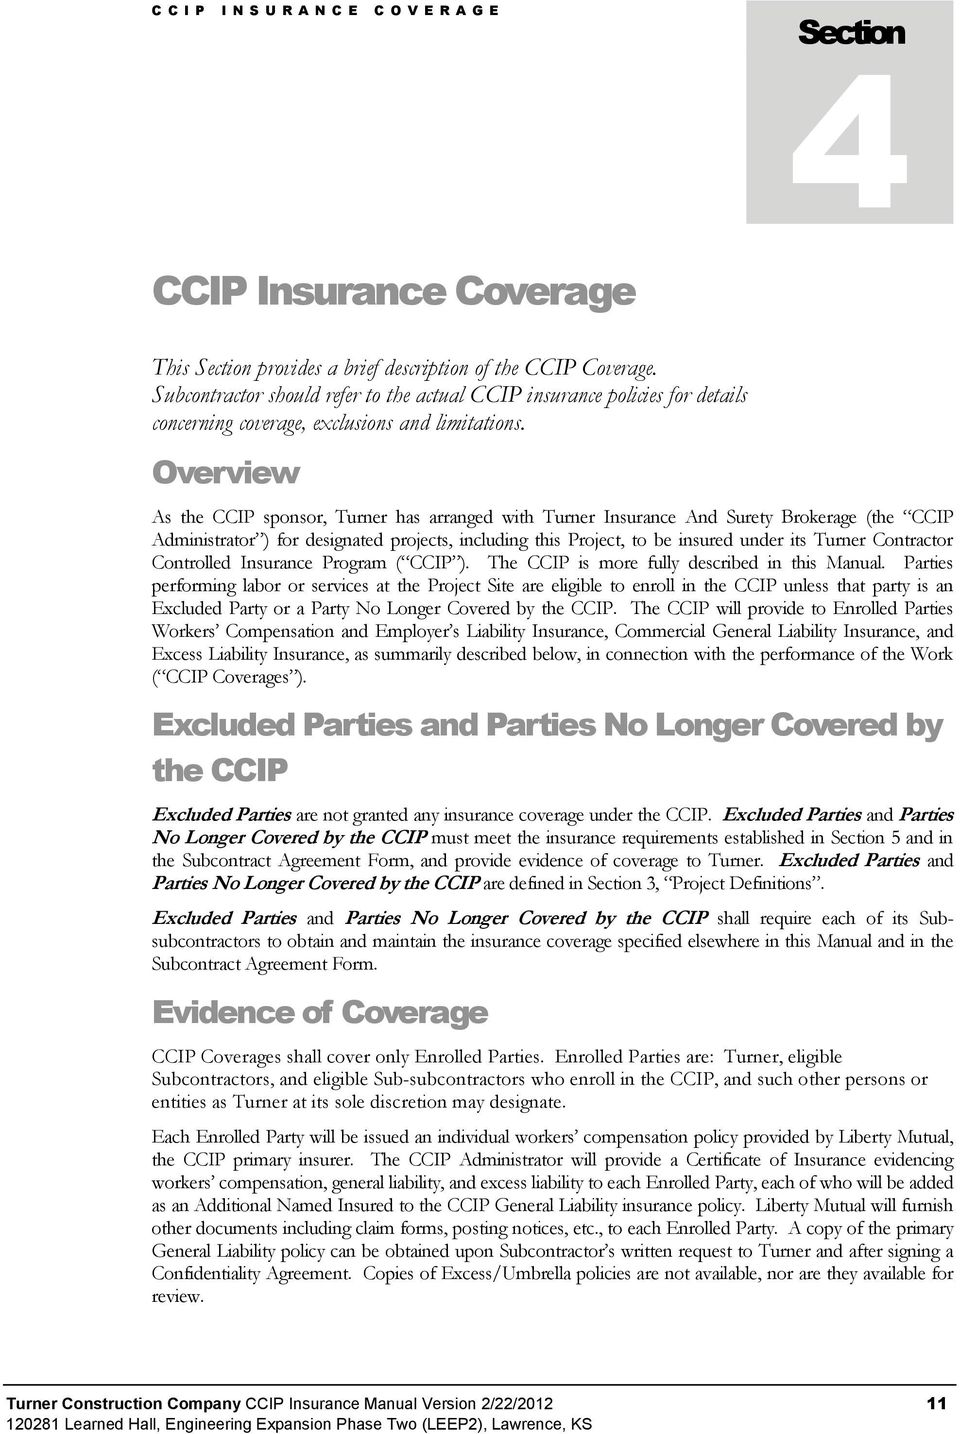 Ccip insurance manual turner construction company pdf overview as the ccip sponsor turner has arranged with turner insurance and surety brokerage platinumwayz